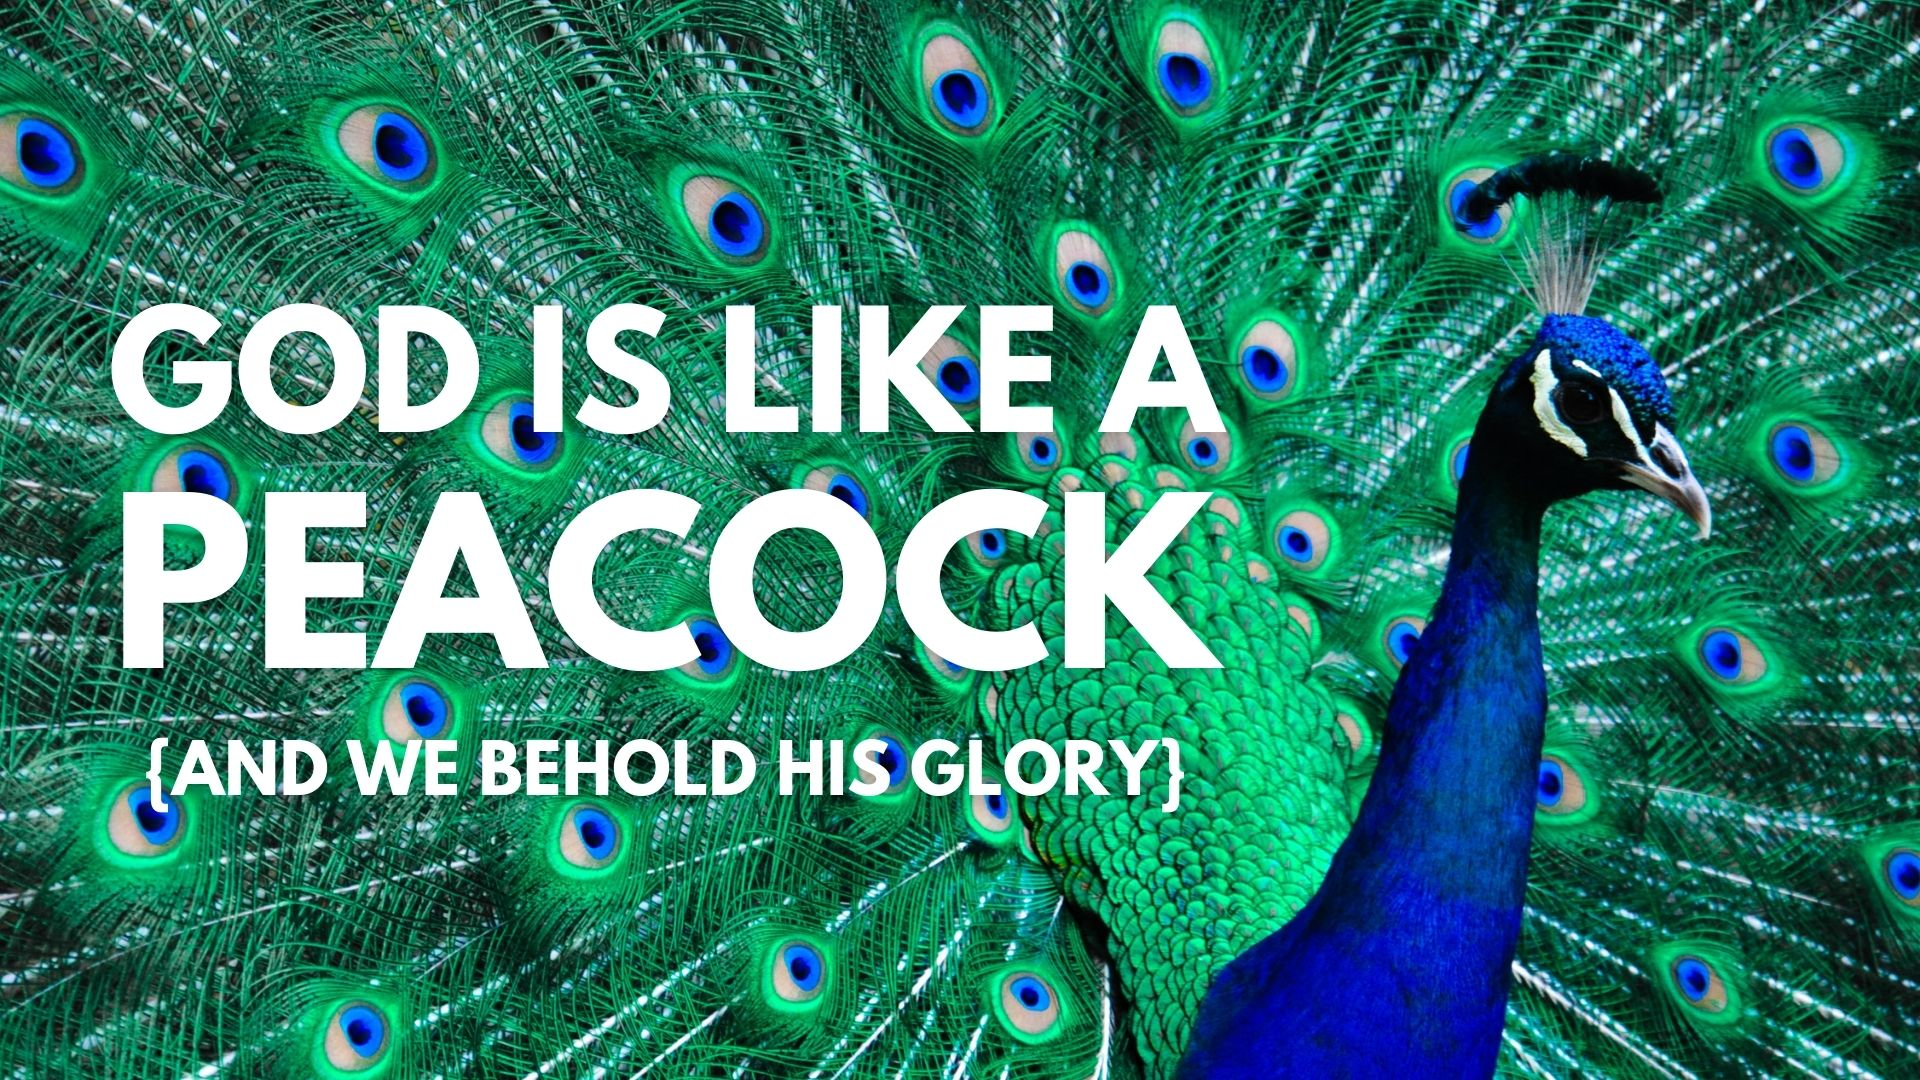 God is like a Peacock